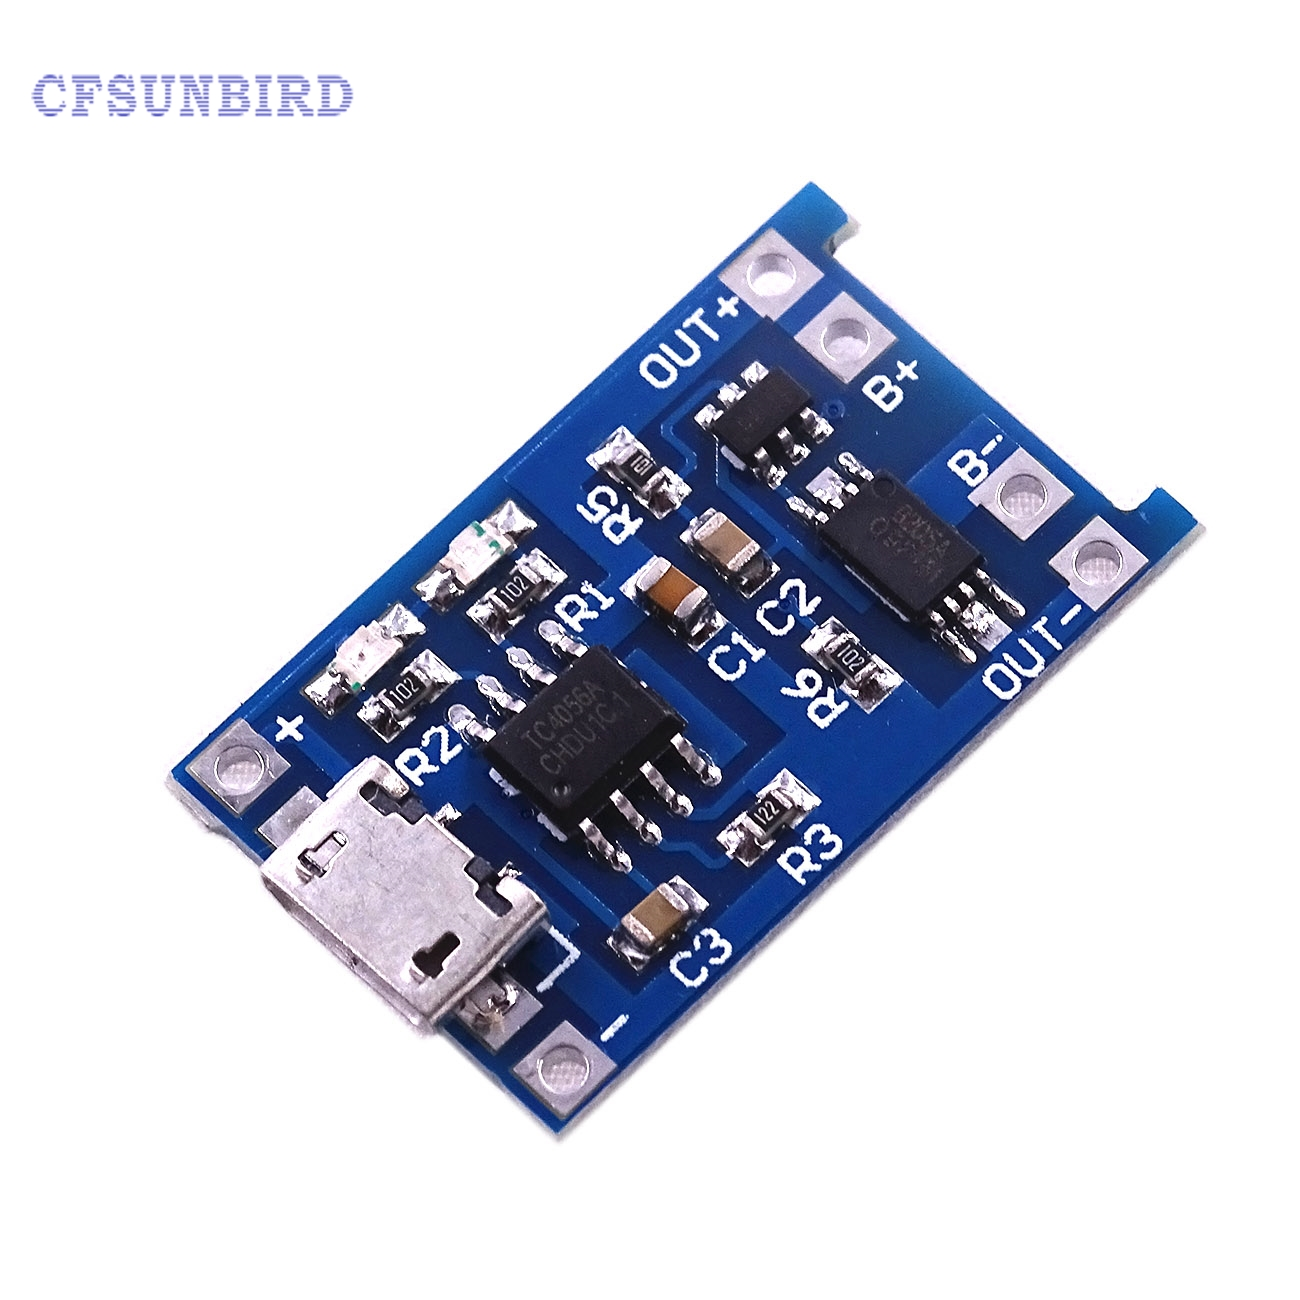 50pcs  Micro USB 5V 1A 18650 TP4056 Lithium Battery Charger Module Charging Board With Protection Dual Functions 12a 3s 18650 li ion lithium battery cell charger protection board pcb lithium polymer battery charging module